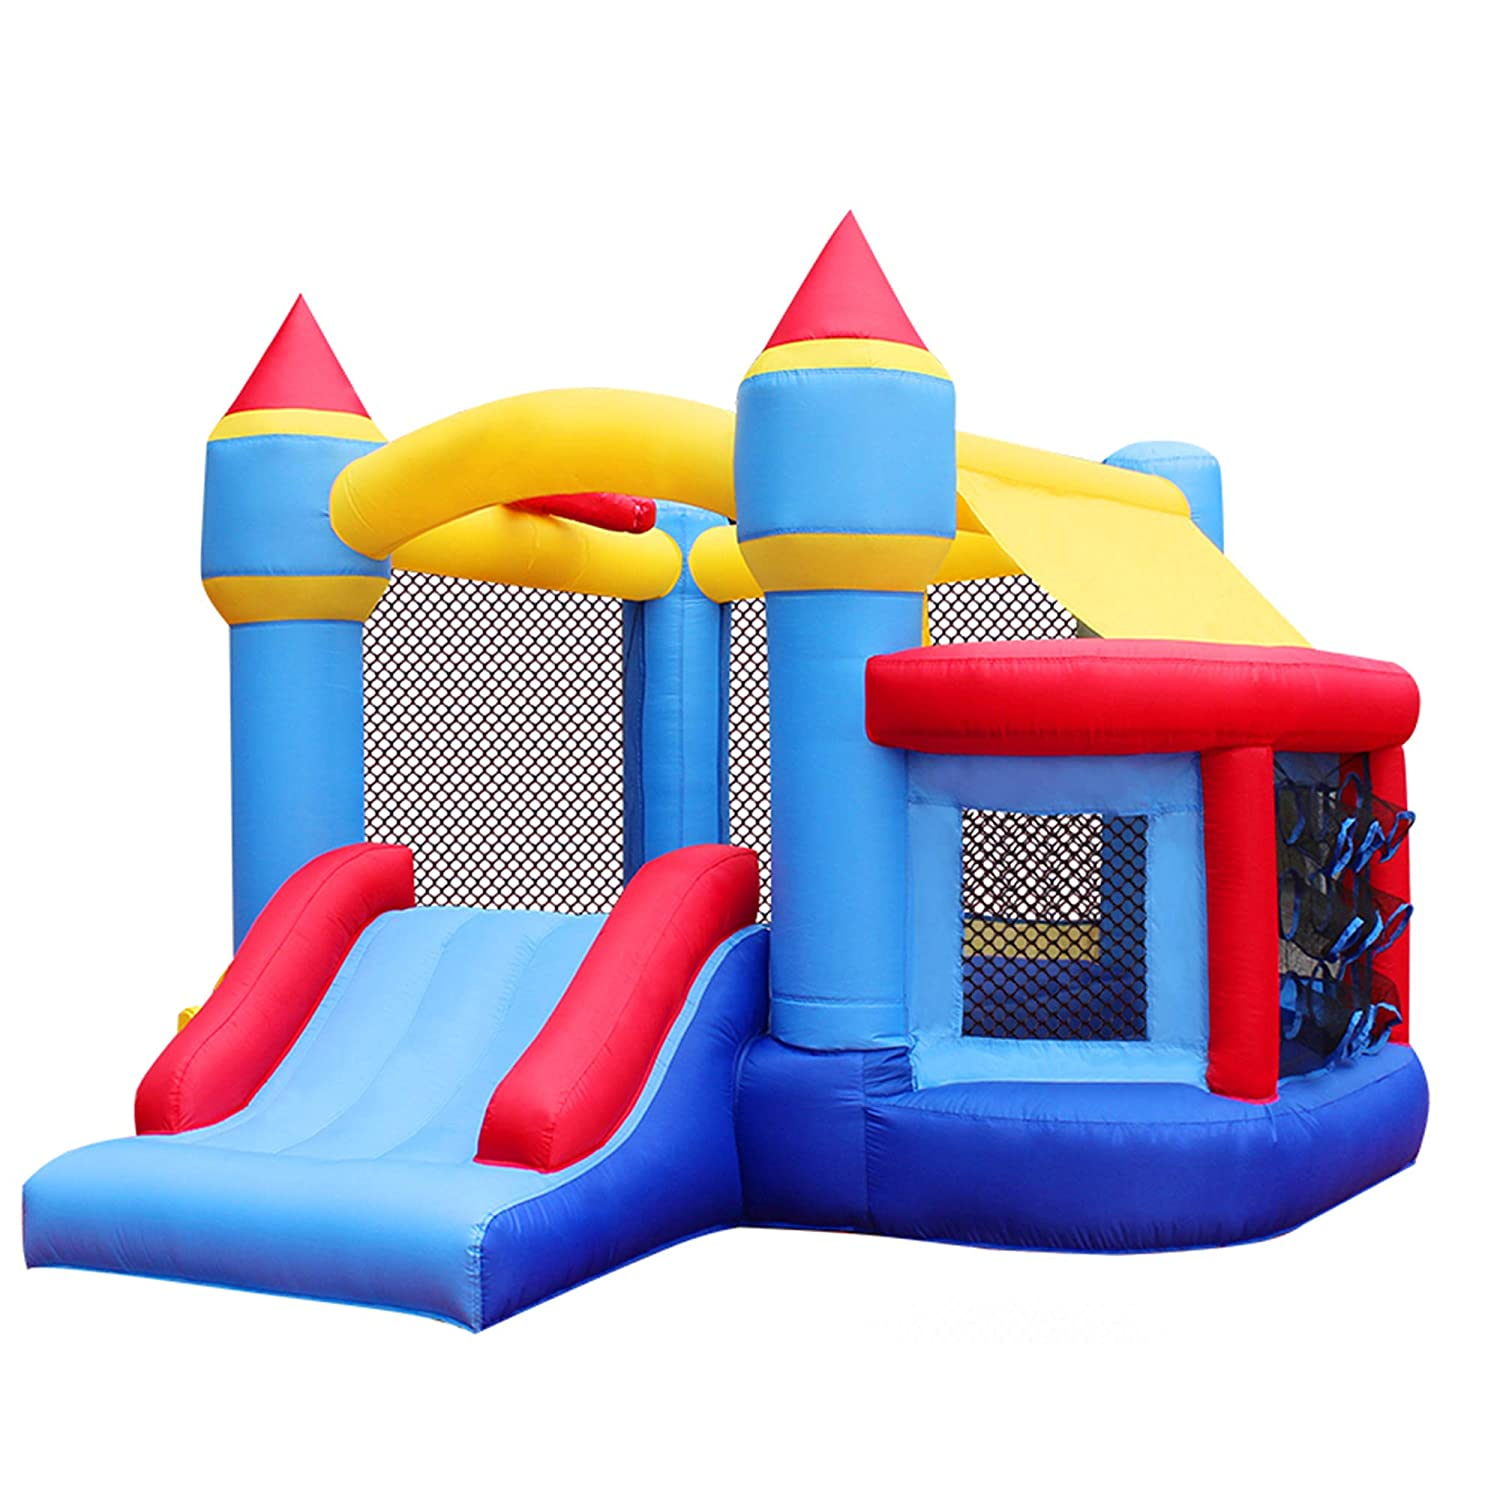 Amazon.com: RetroJump Bounce House Castle Bouncy Inflatable Slide Bouncer  Playhouse With Ball Pit Basketball Hoop With Blower: Toys & Games